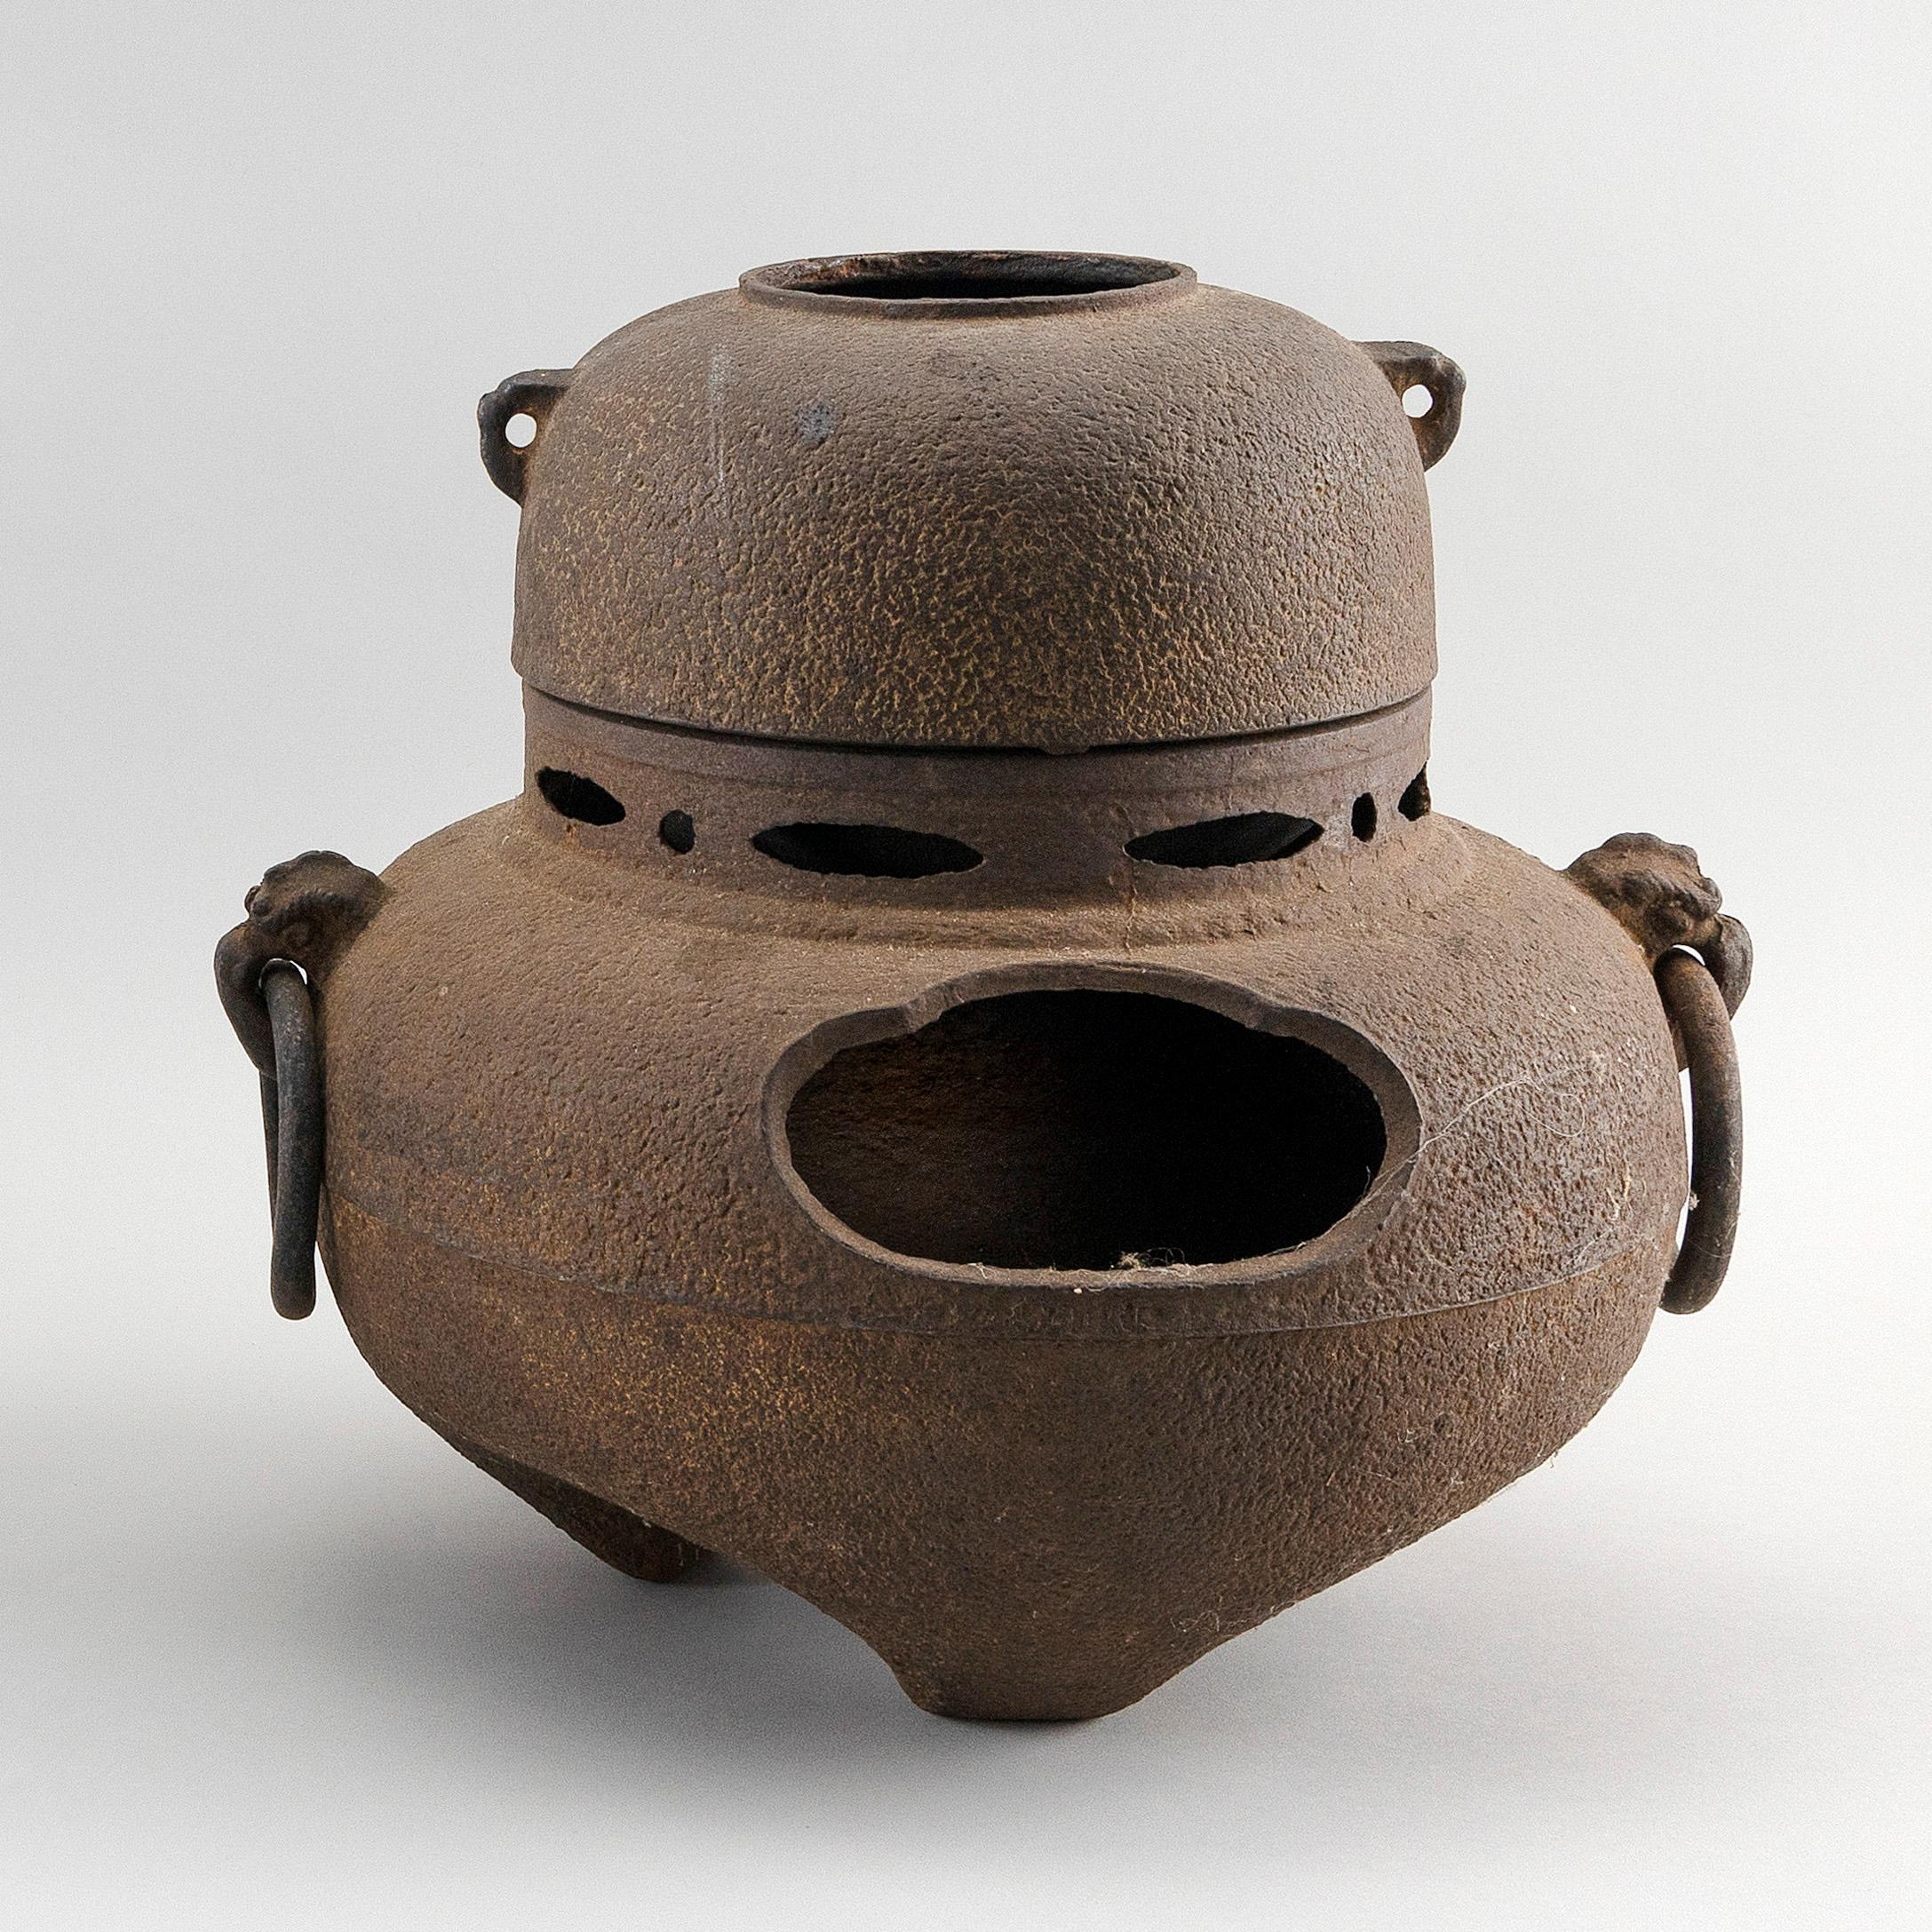 JAPANESE CAST IRON TWO-PIECE HIBACHI AND KETTLE FOR TEA CEREMONY Furo (hibachi base) in squat ovoid form with mask and ring handles...